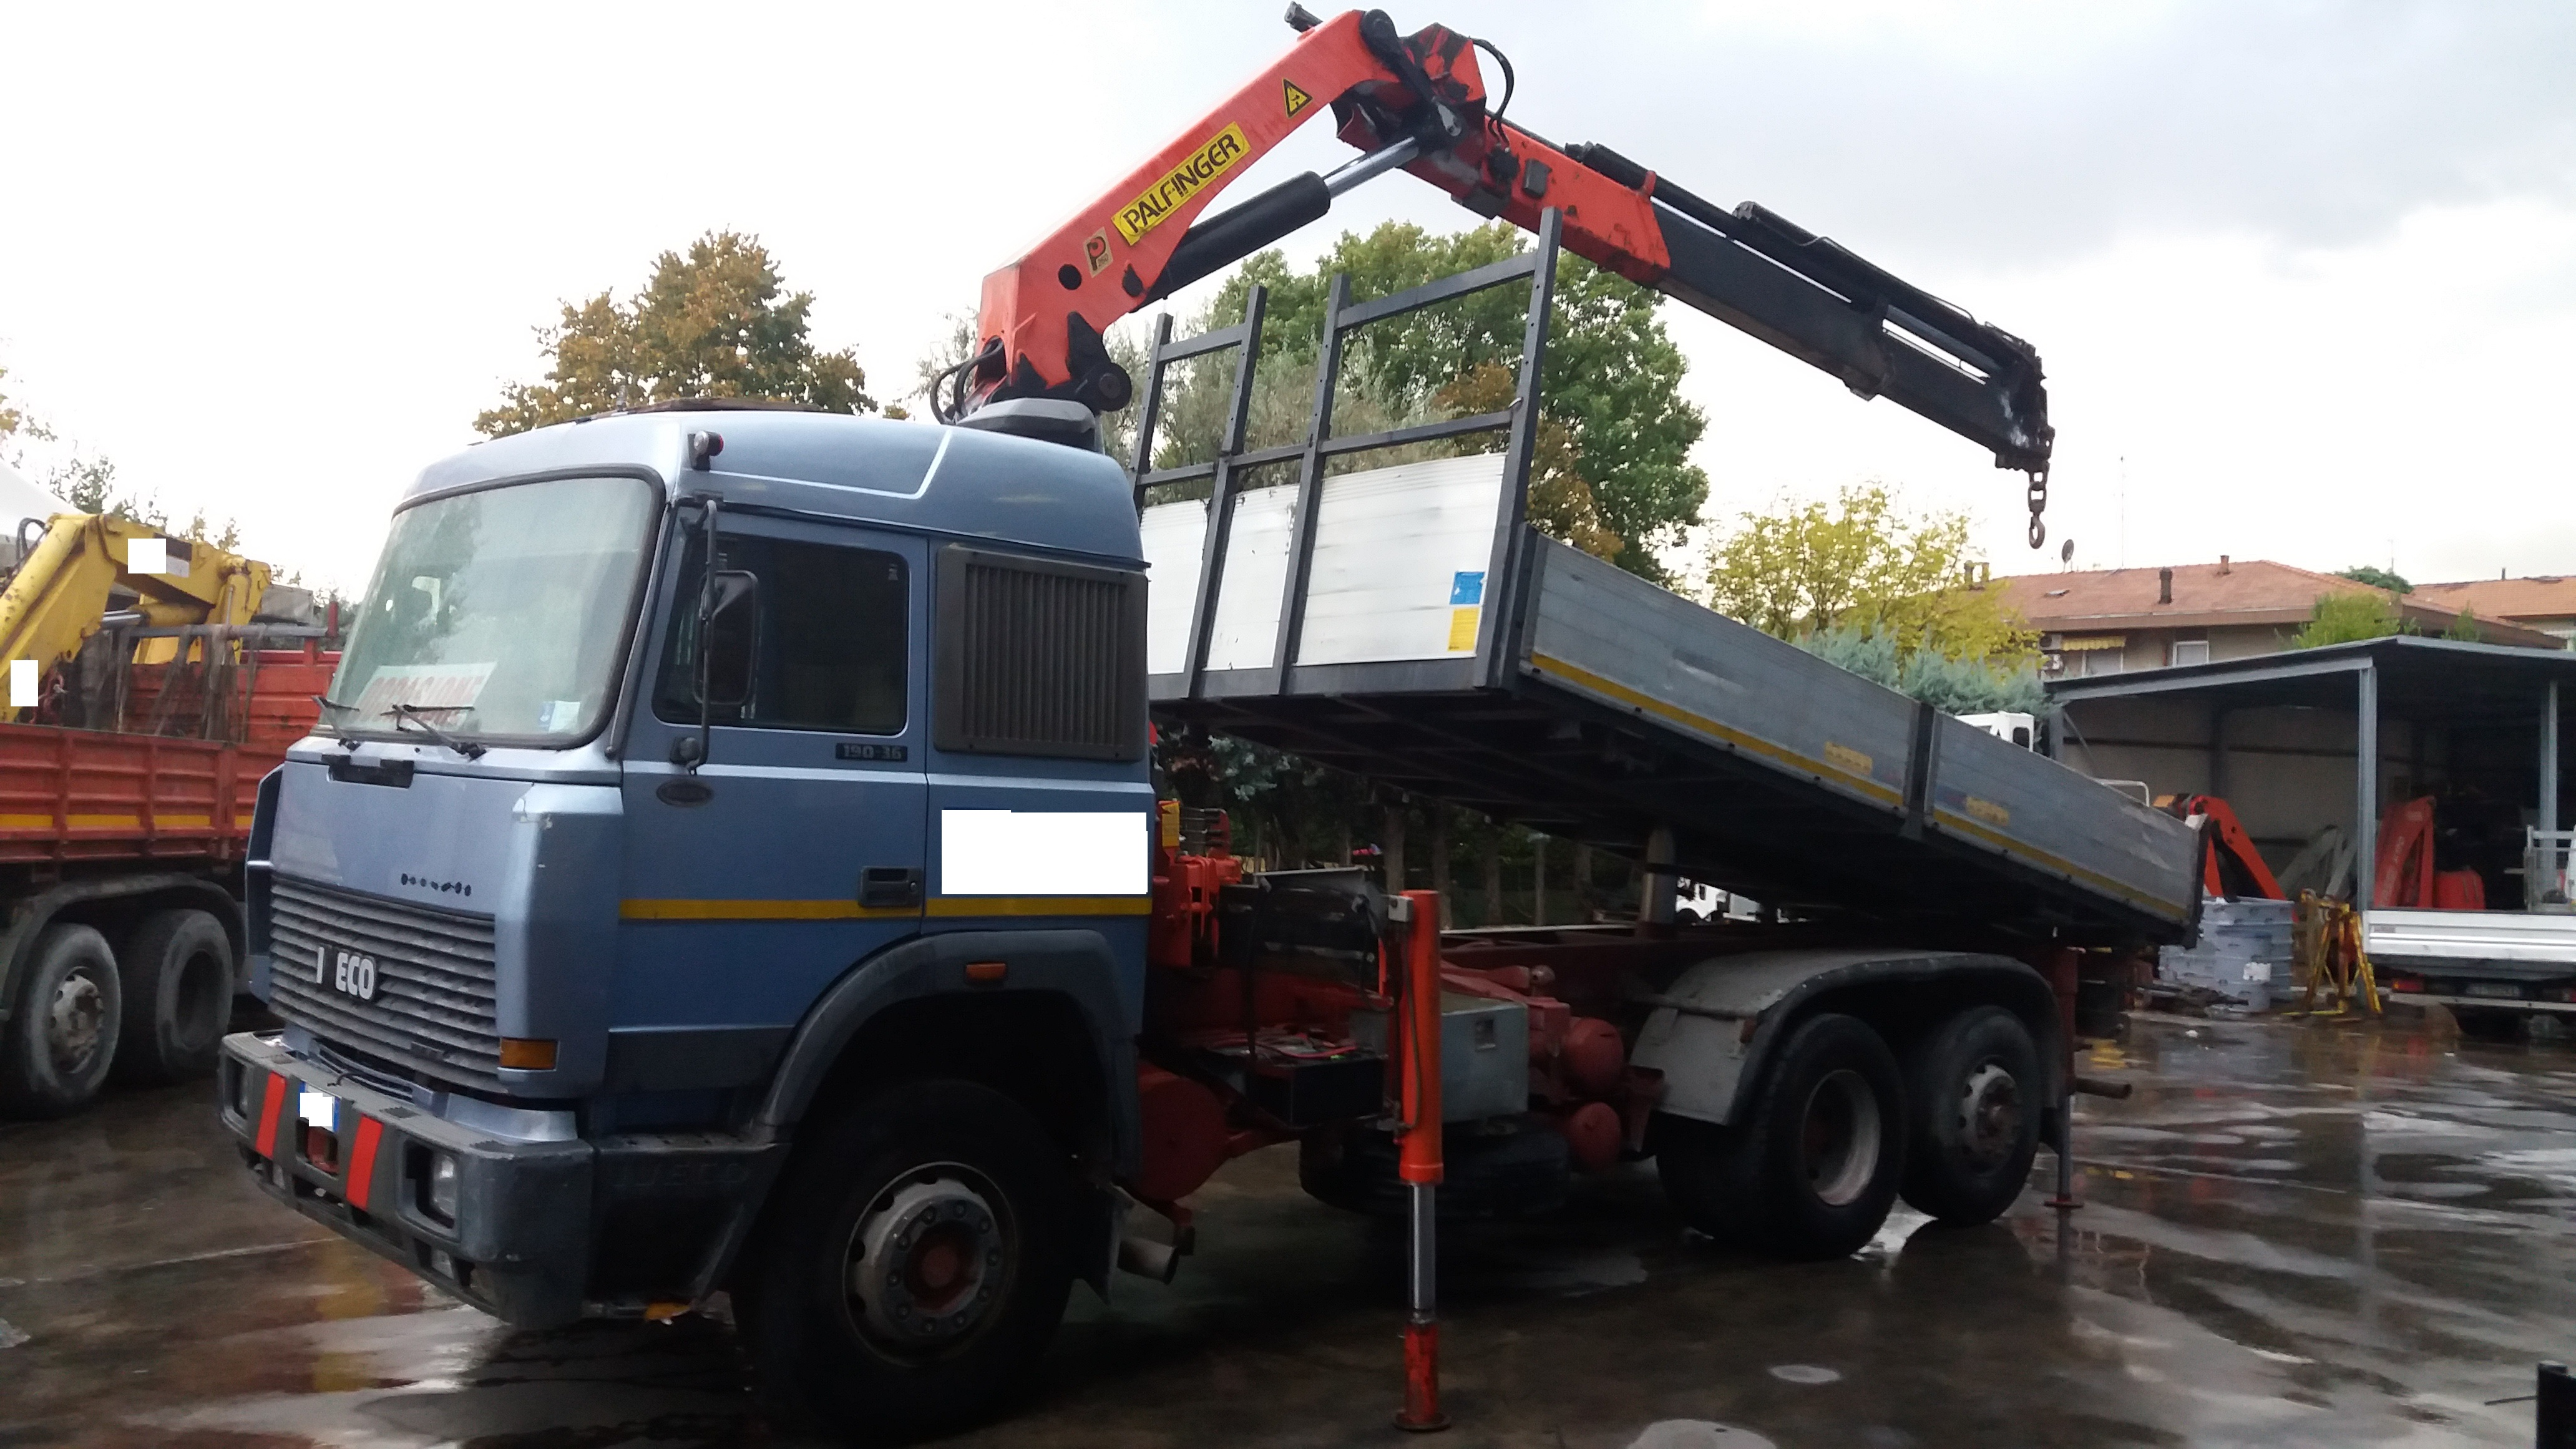 IVECO 190-36 Ribaltabile + gru Palfinger a Camion oltre 7,5 Ton